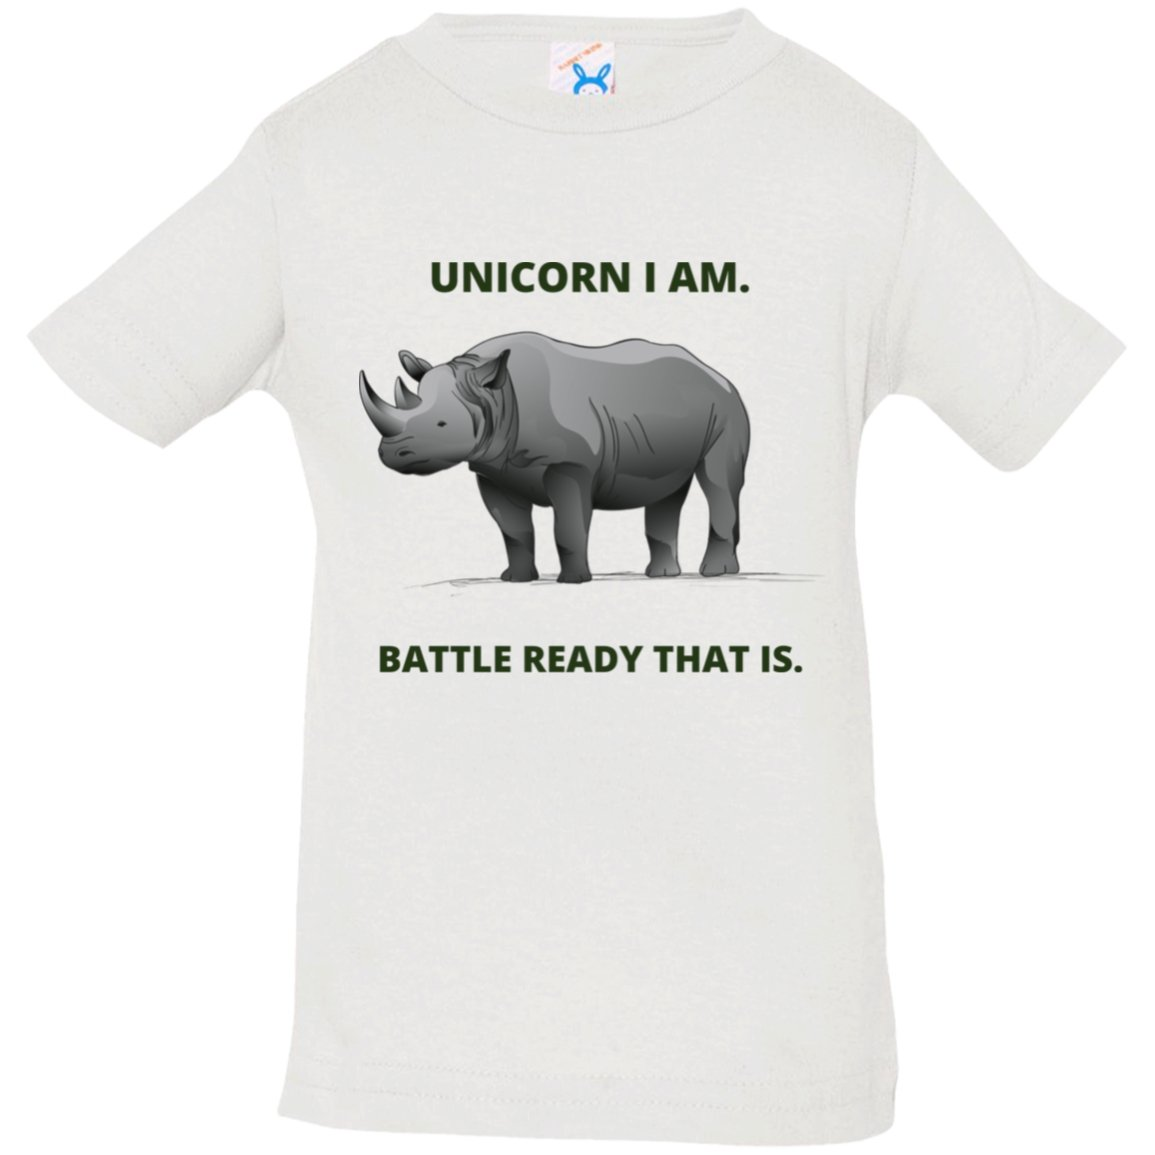 "T-Shirts ""Unicorn I am"" Short Sleeve T-Shirt - 4 colors - ZERO TO THREE CLUB T-Shirts"